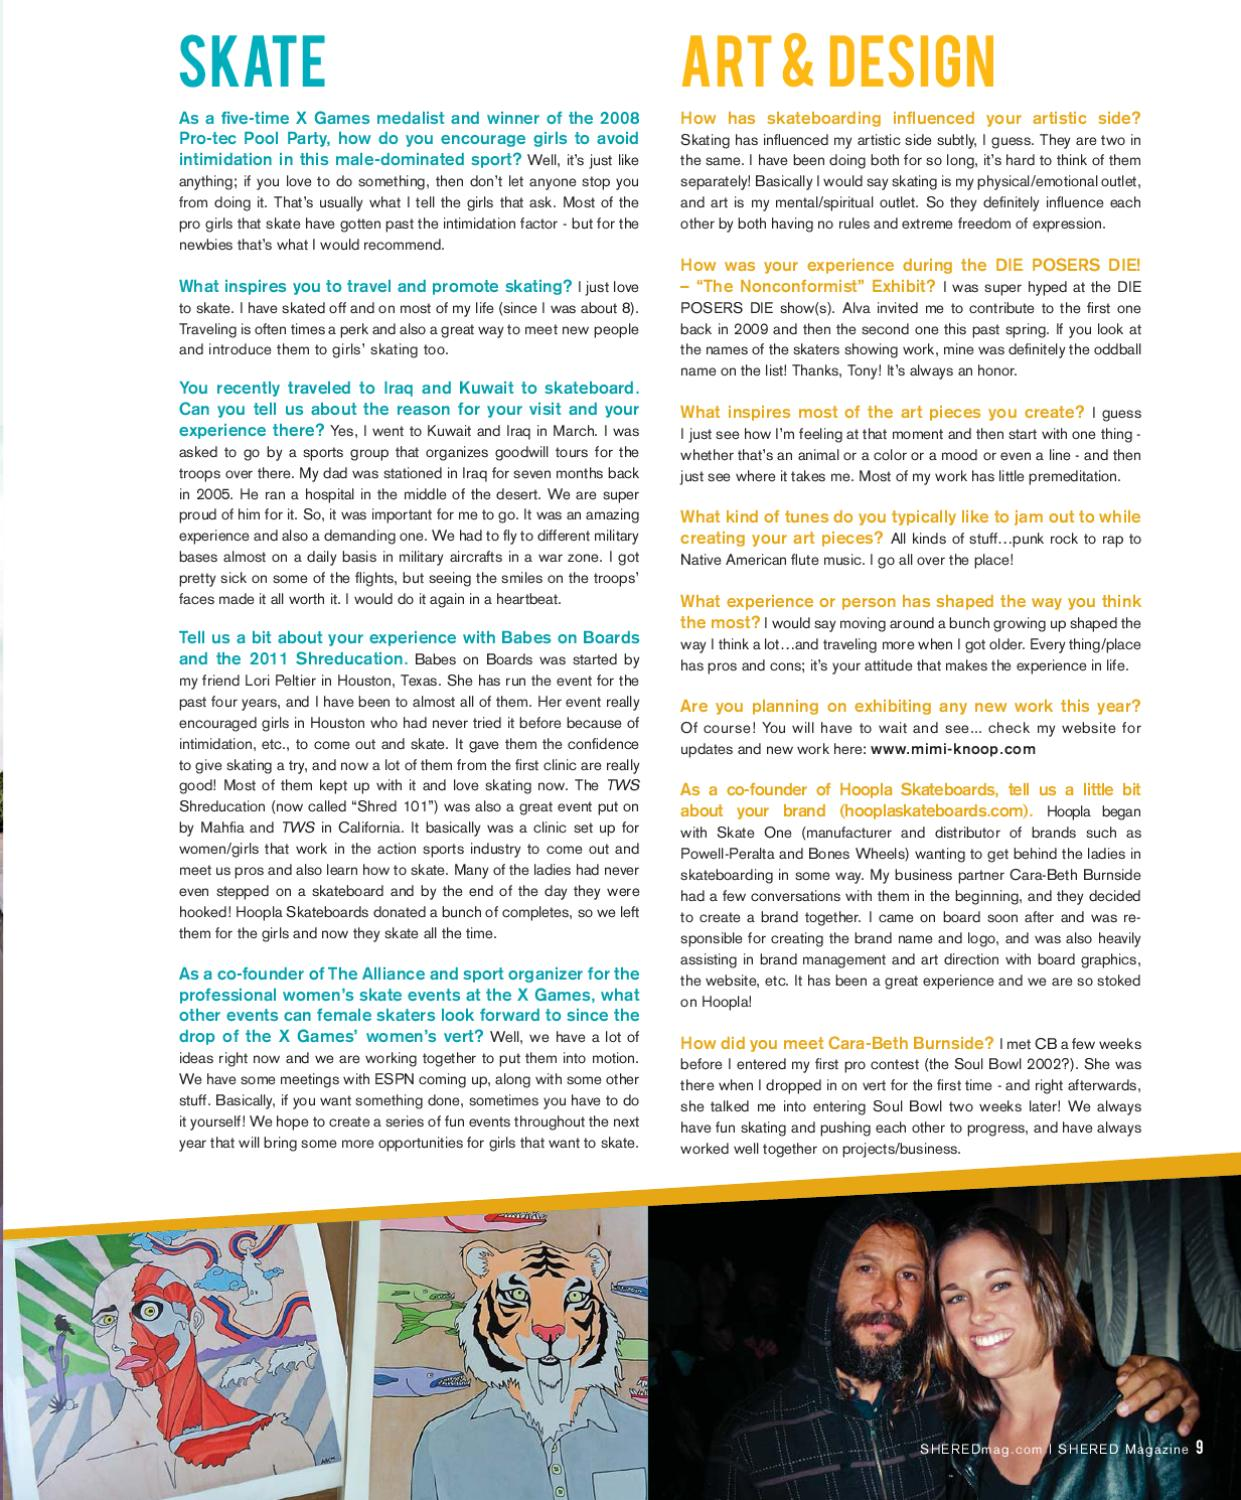 vol 10 no 2 by concrete wave magazine issuu - What Inspires You What Influenced You The Most